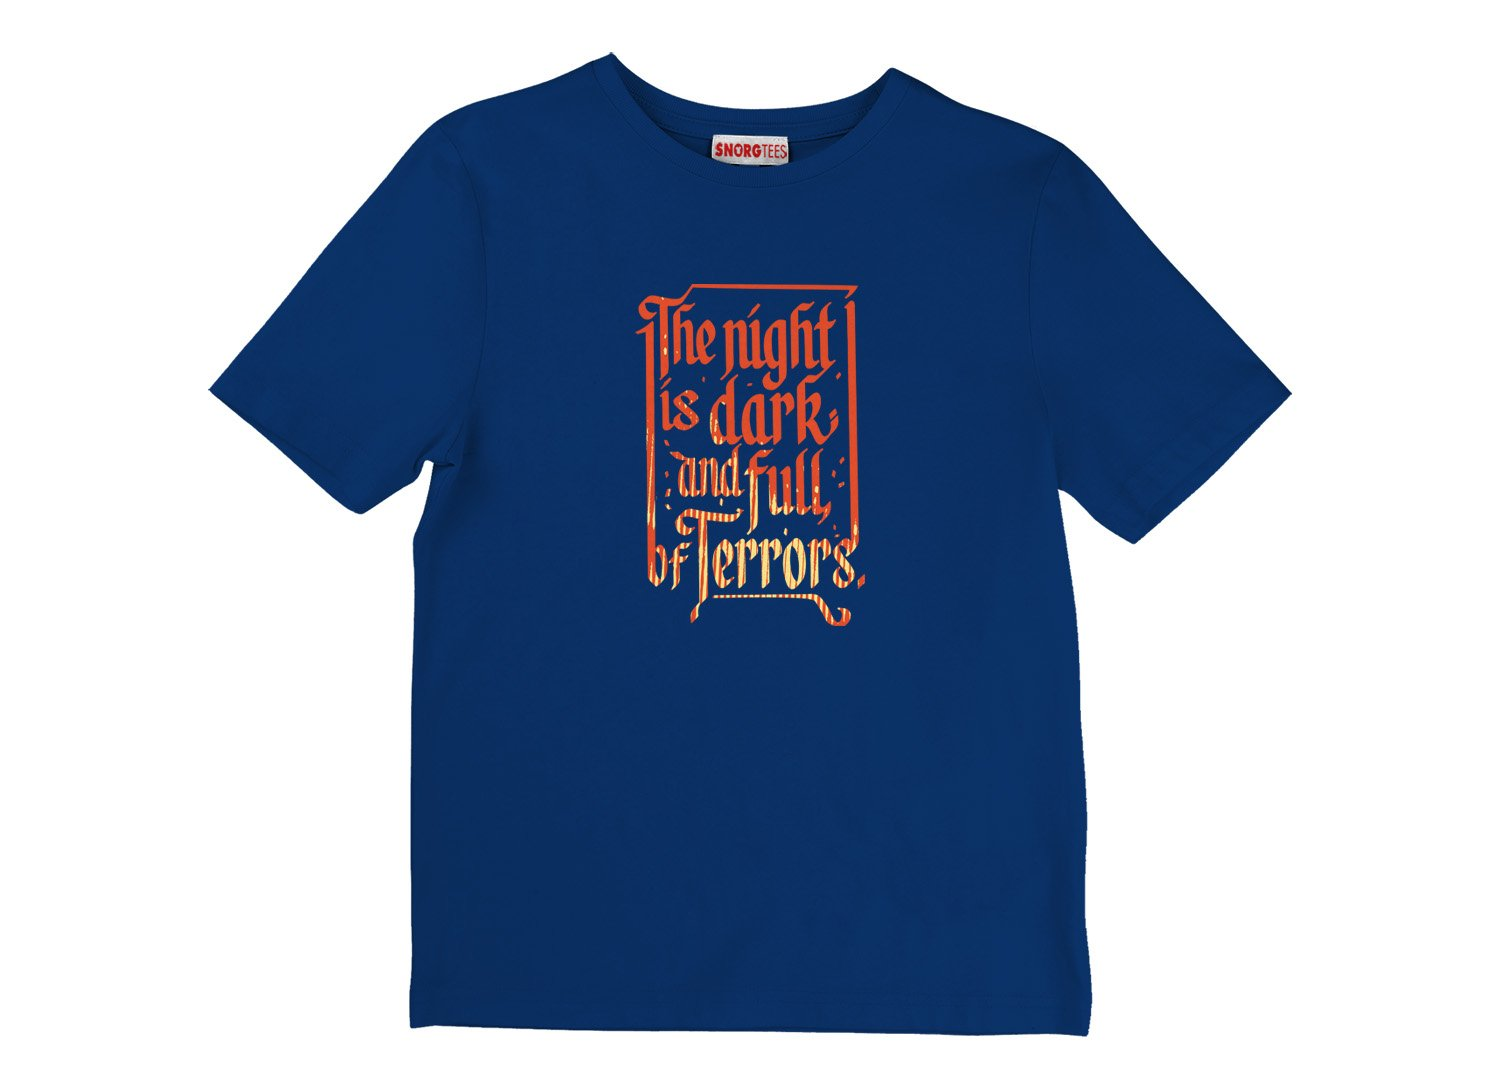 The Night Is Dark And Full Of Terrors on Kids T-Shirt